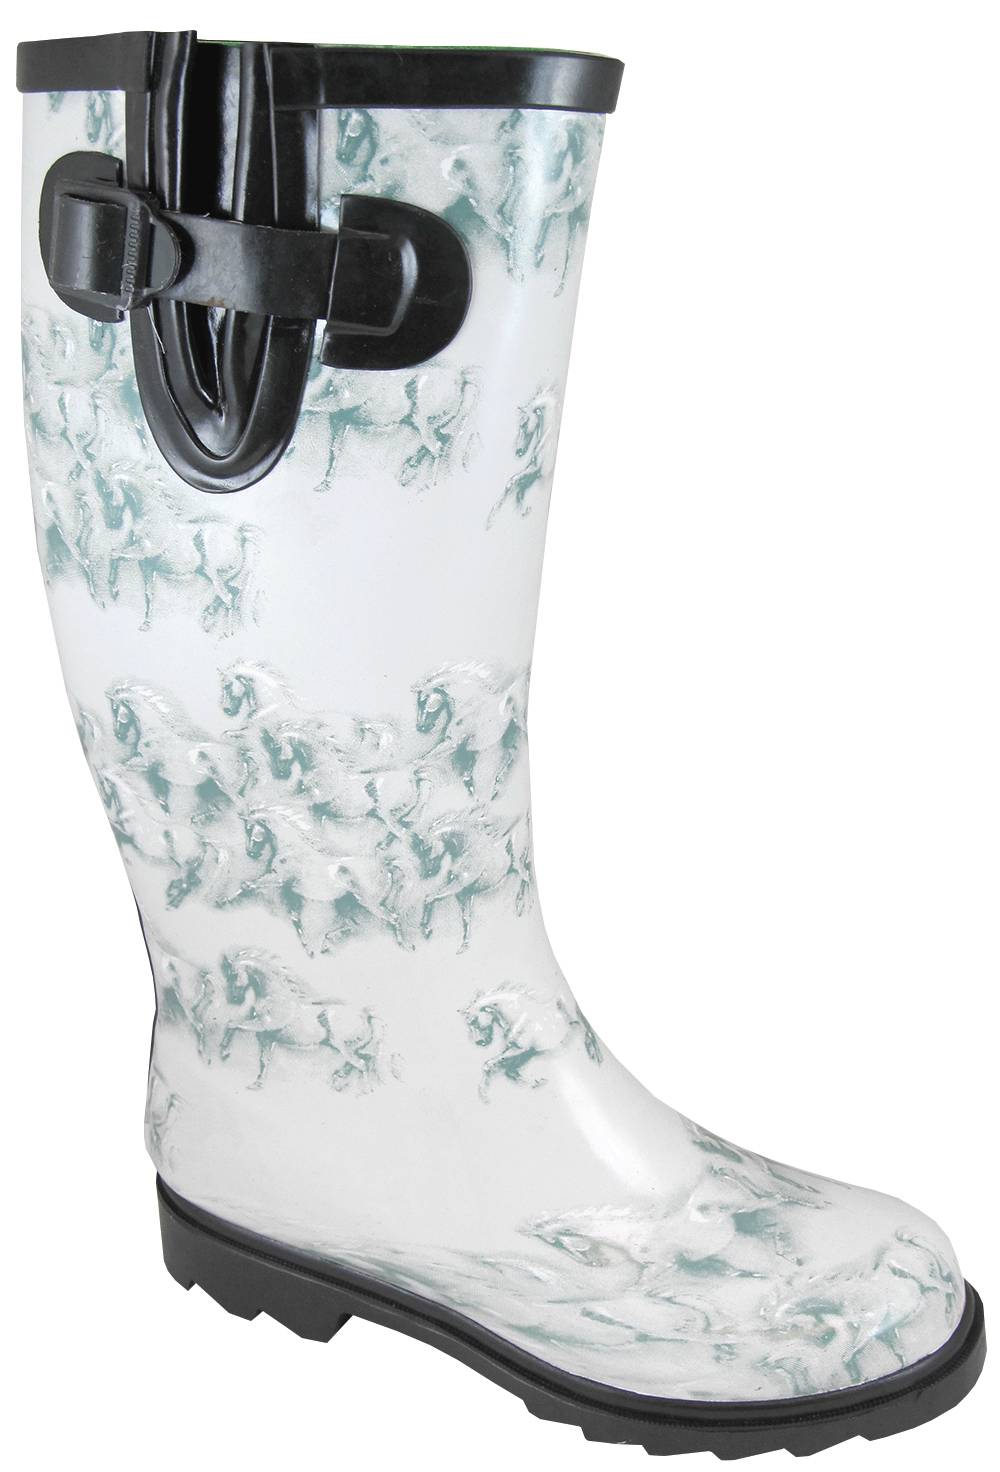 Smoky Mountain Ladies Misty Rubber Boots